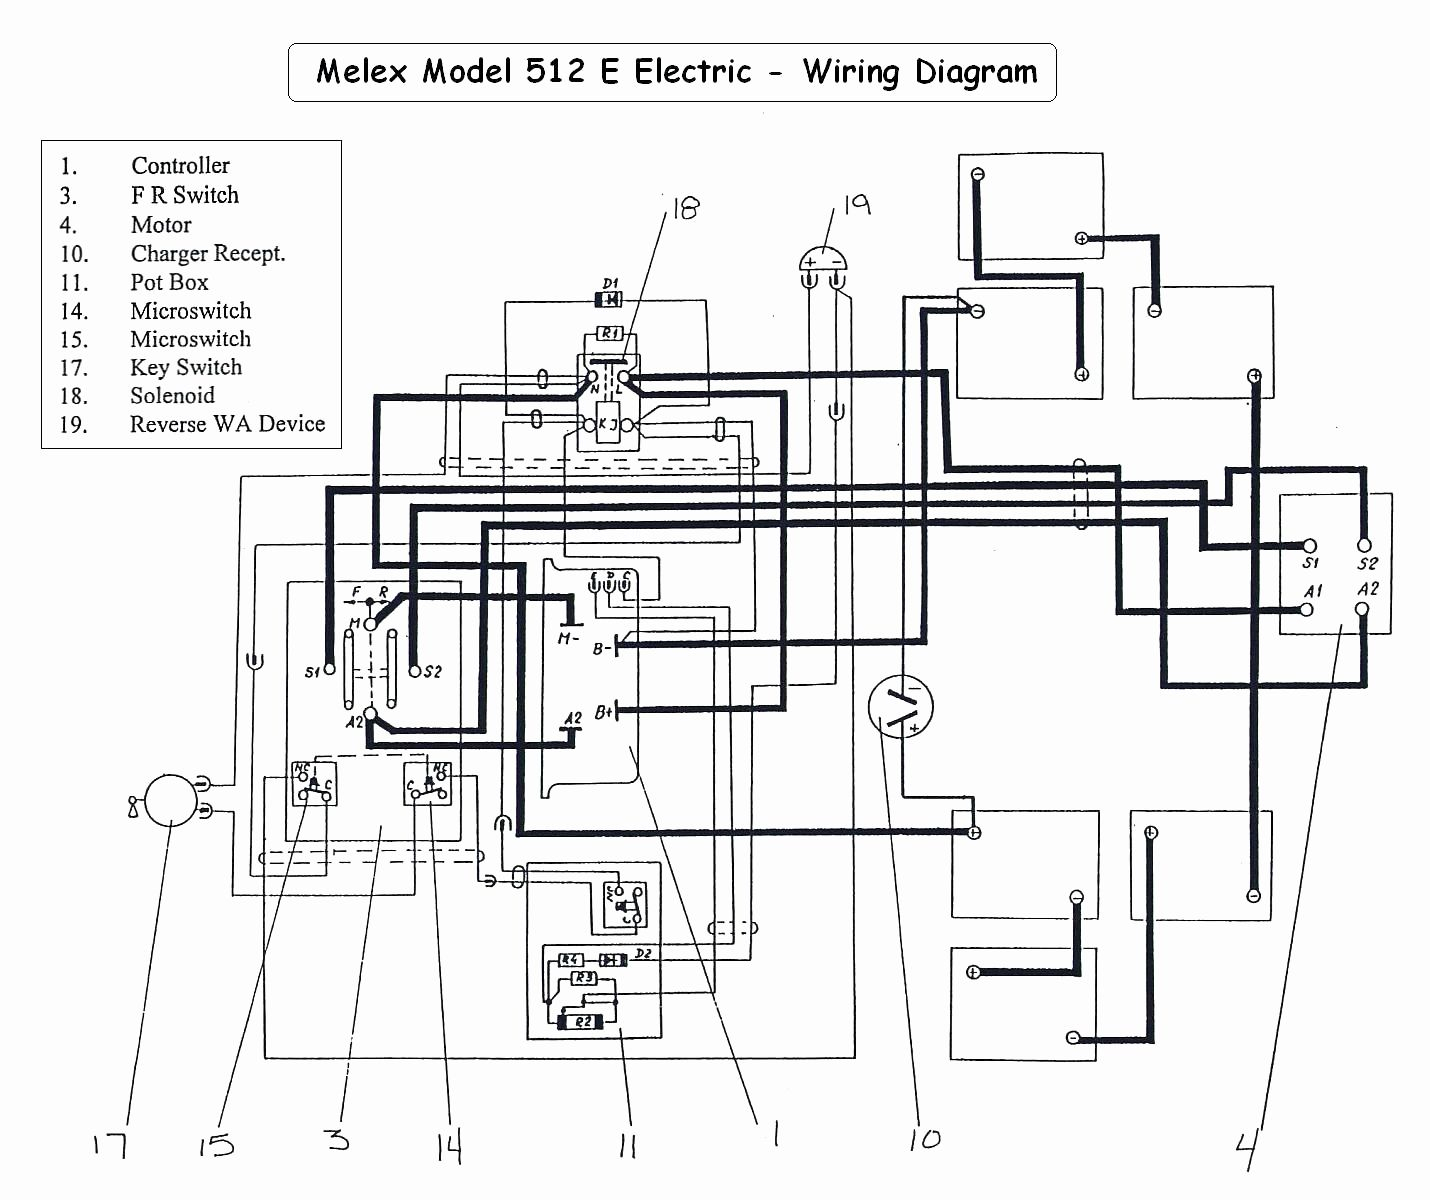 E Z Go Golf Cart Batteries Wiring Diagram | Wiring Diagram - 48 Volt Golf Cart Battery Wiring Diagram